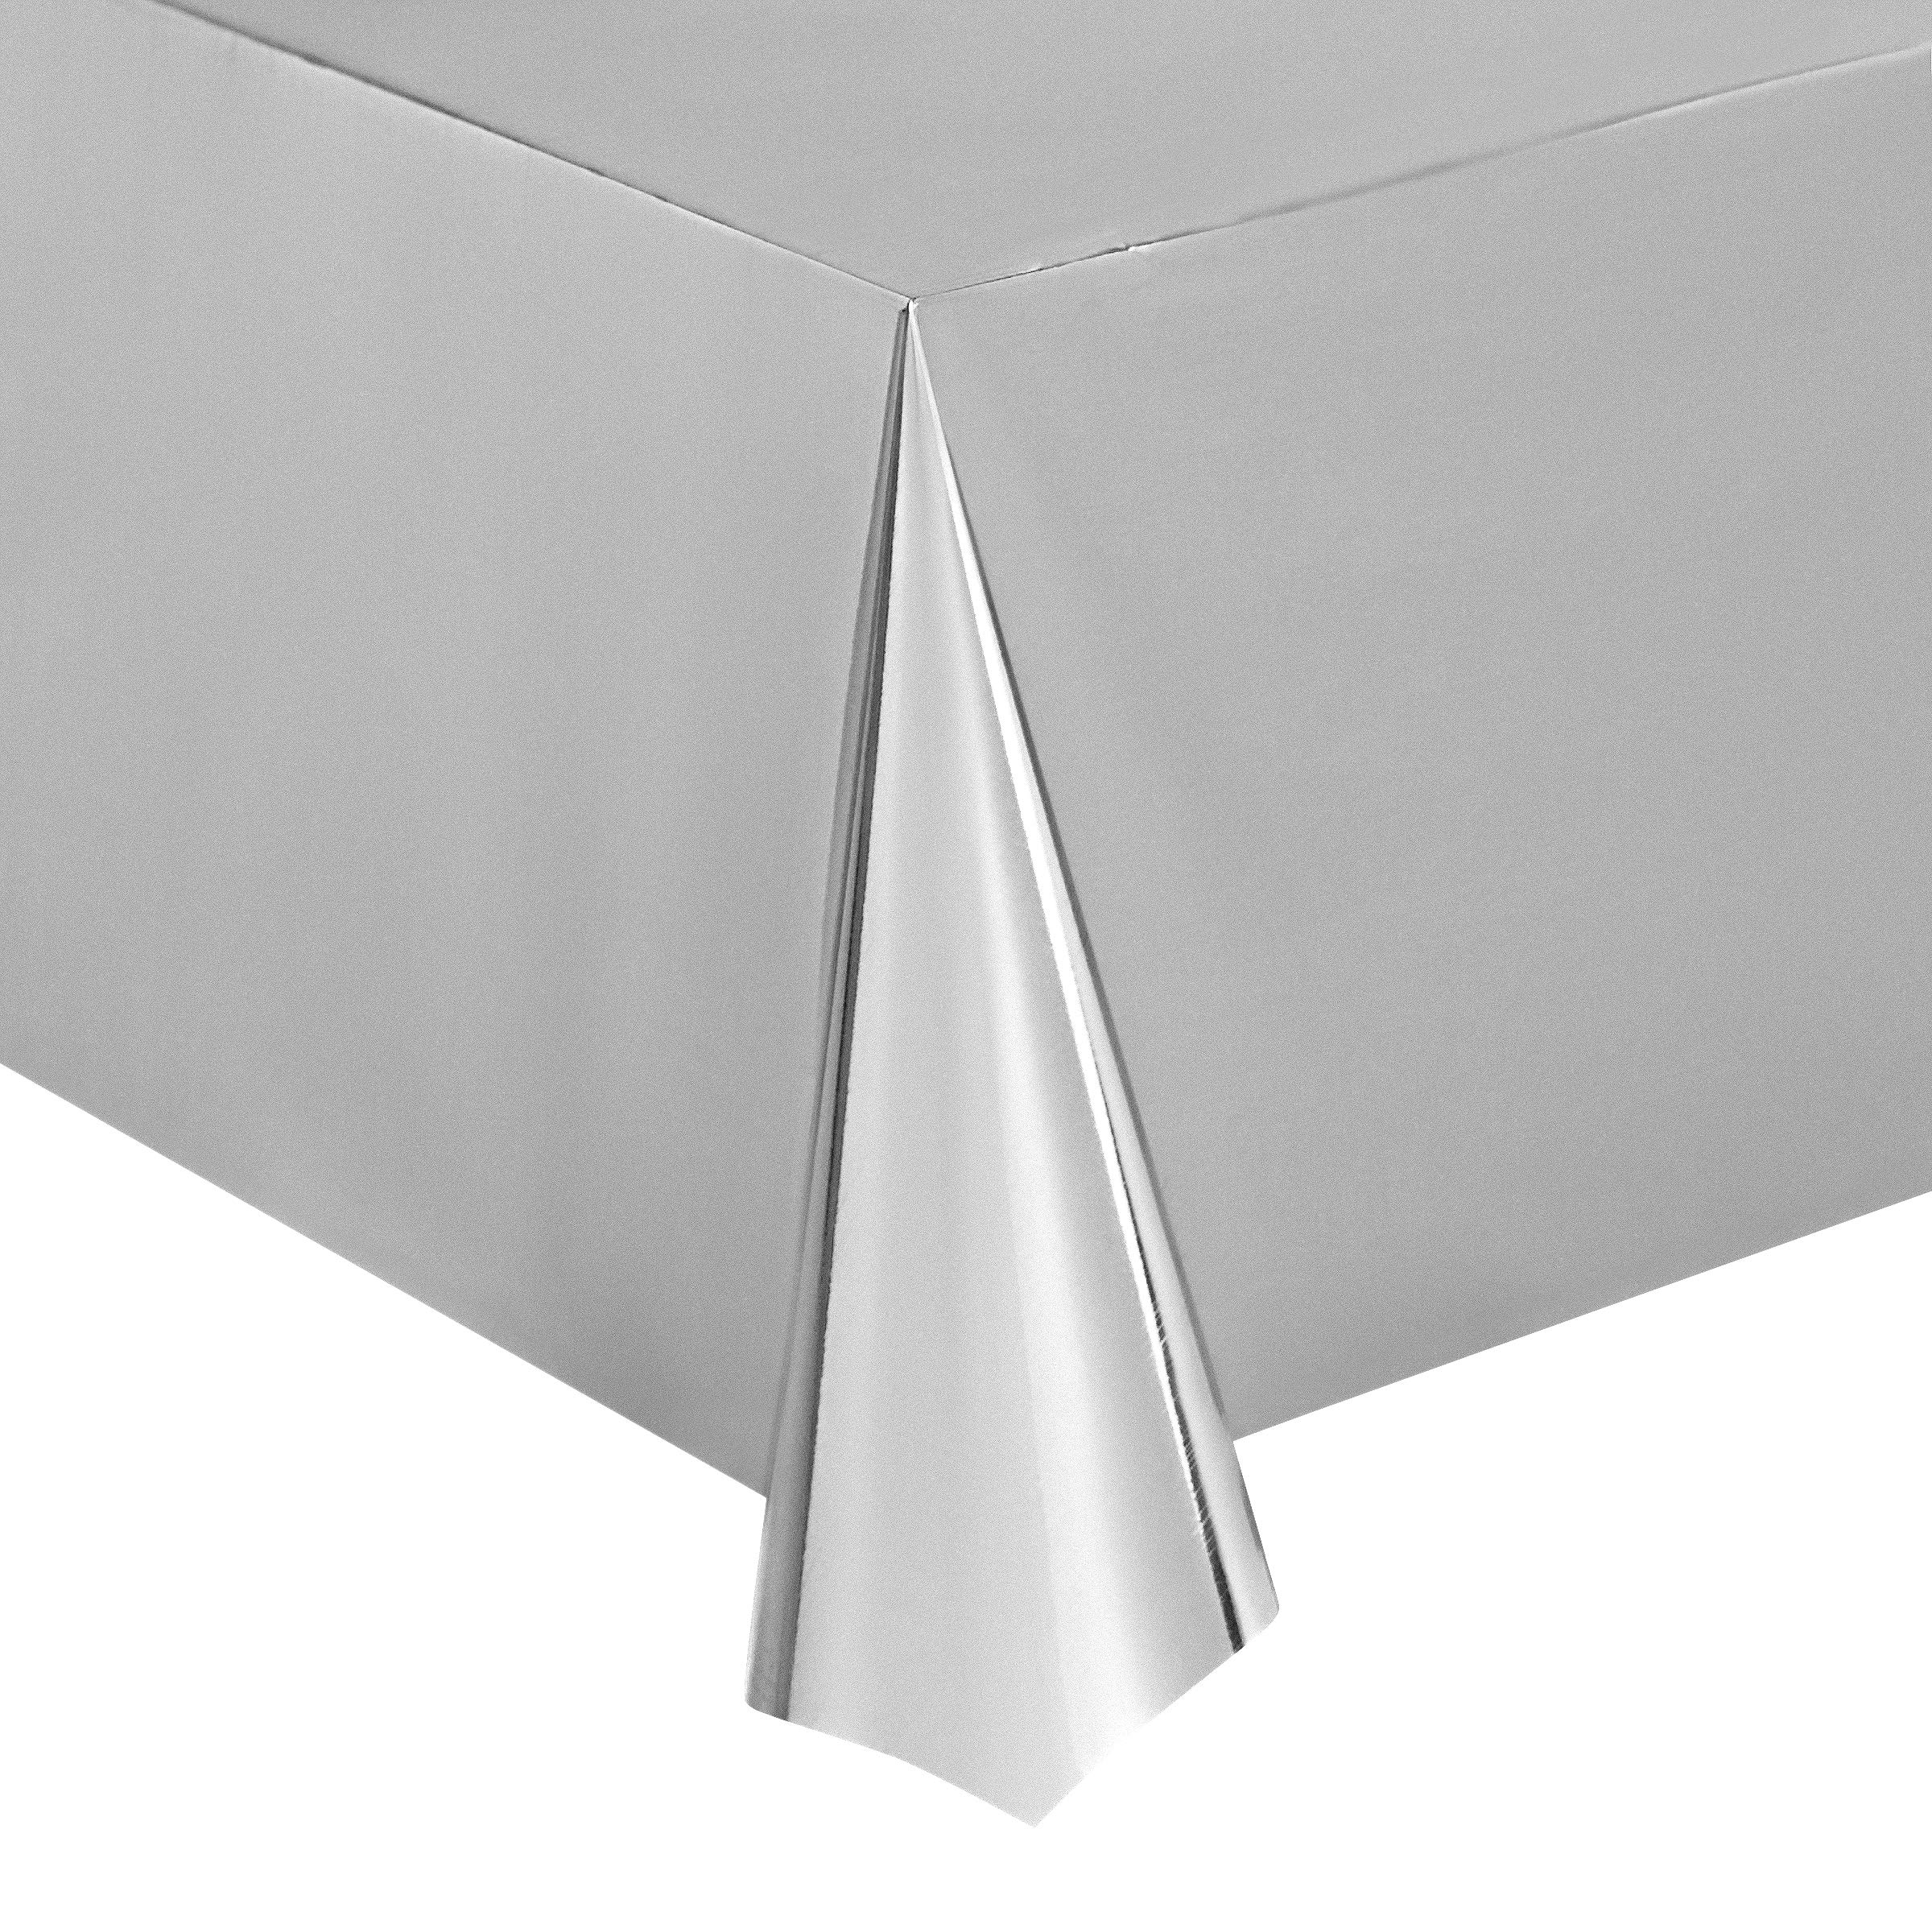 Juvale Silver Foil Tablecloth - 6-Pack 54 x 108 Inch Shiny Plastic Tablecloth, Fits up to 8-Foot Long Tables, Silver Themed Party Supplies, 4.5 x 9 Feet by Juvale